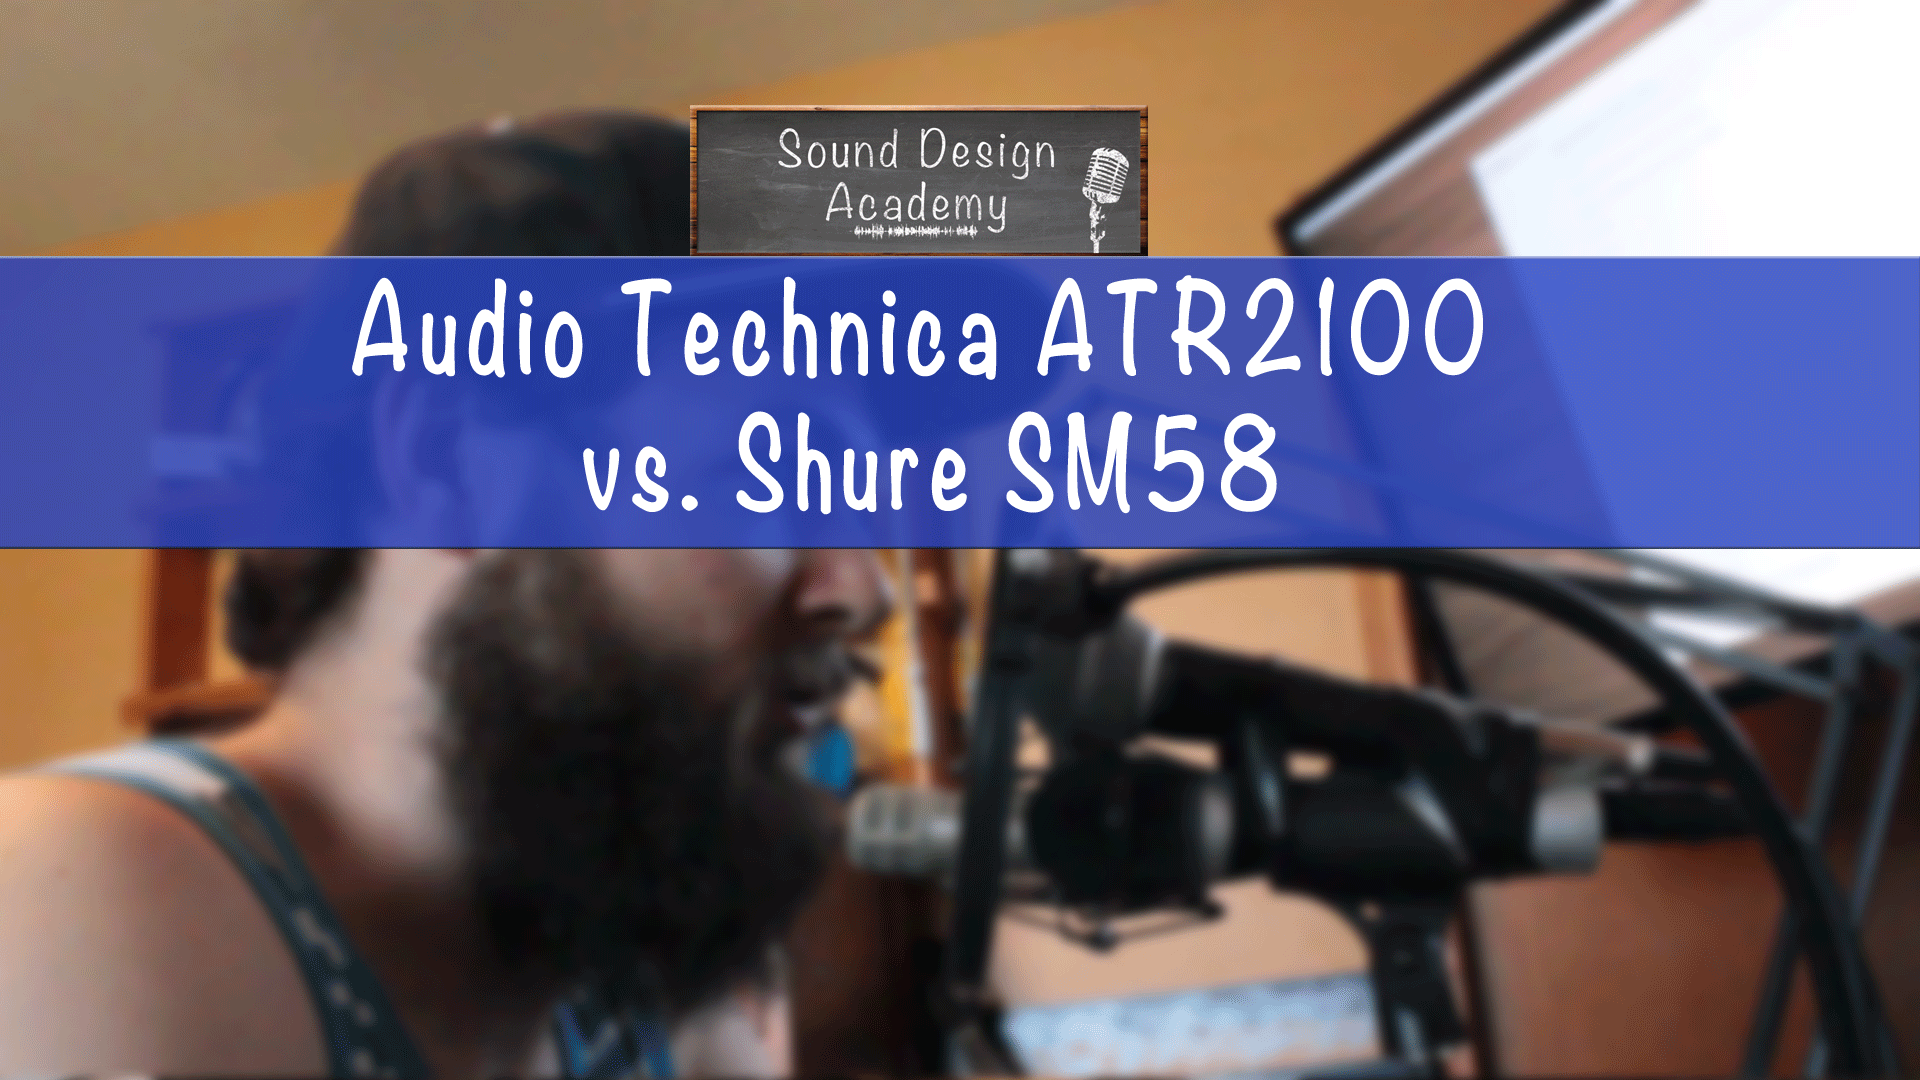 Audio Technica ATR2100 vs. Shure SM58